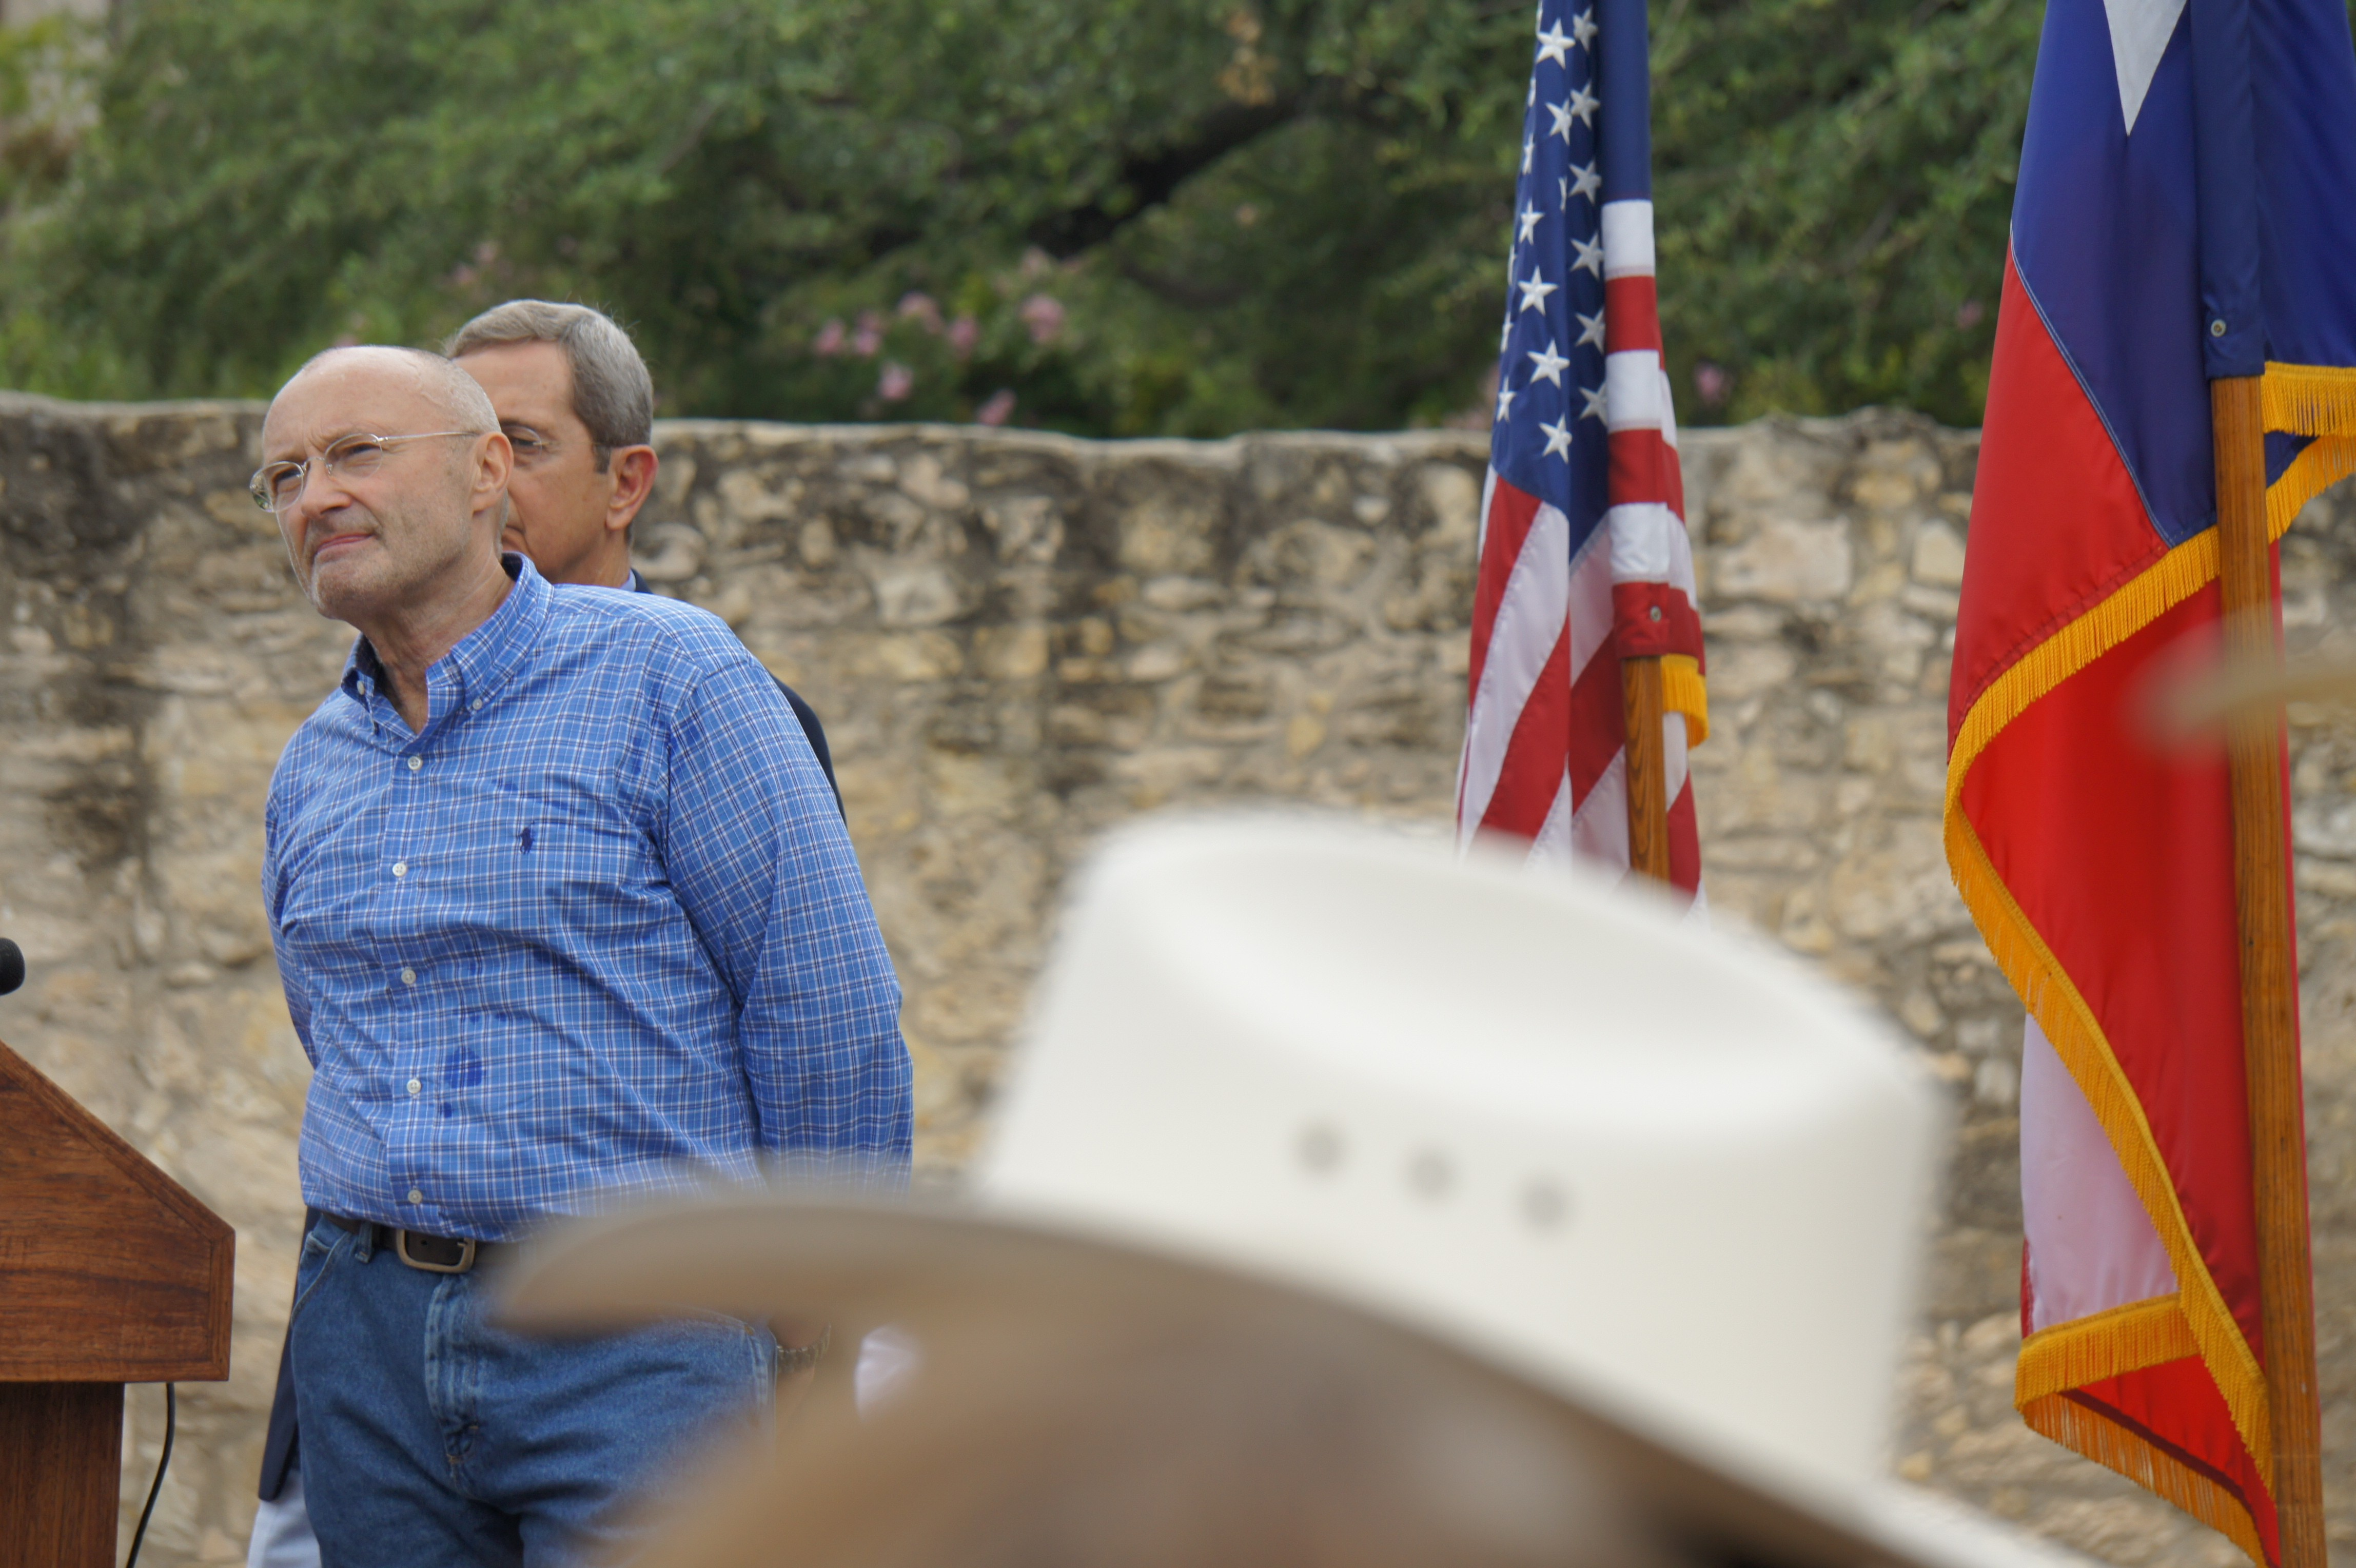 Former Genesis member and Alamo enthusiast Phil Collins is joined onstage by Texas Land Commissioner Jerry Patterson in front of the Alamo on June 26, 2014. Collins formally announced his intention to donate his entire private collection of Texas Revolution memorabilia to the state of Texas. - ALBERT SALAZAR